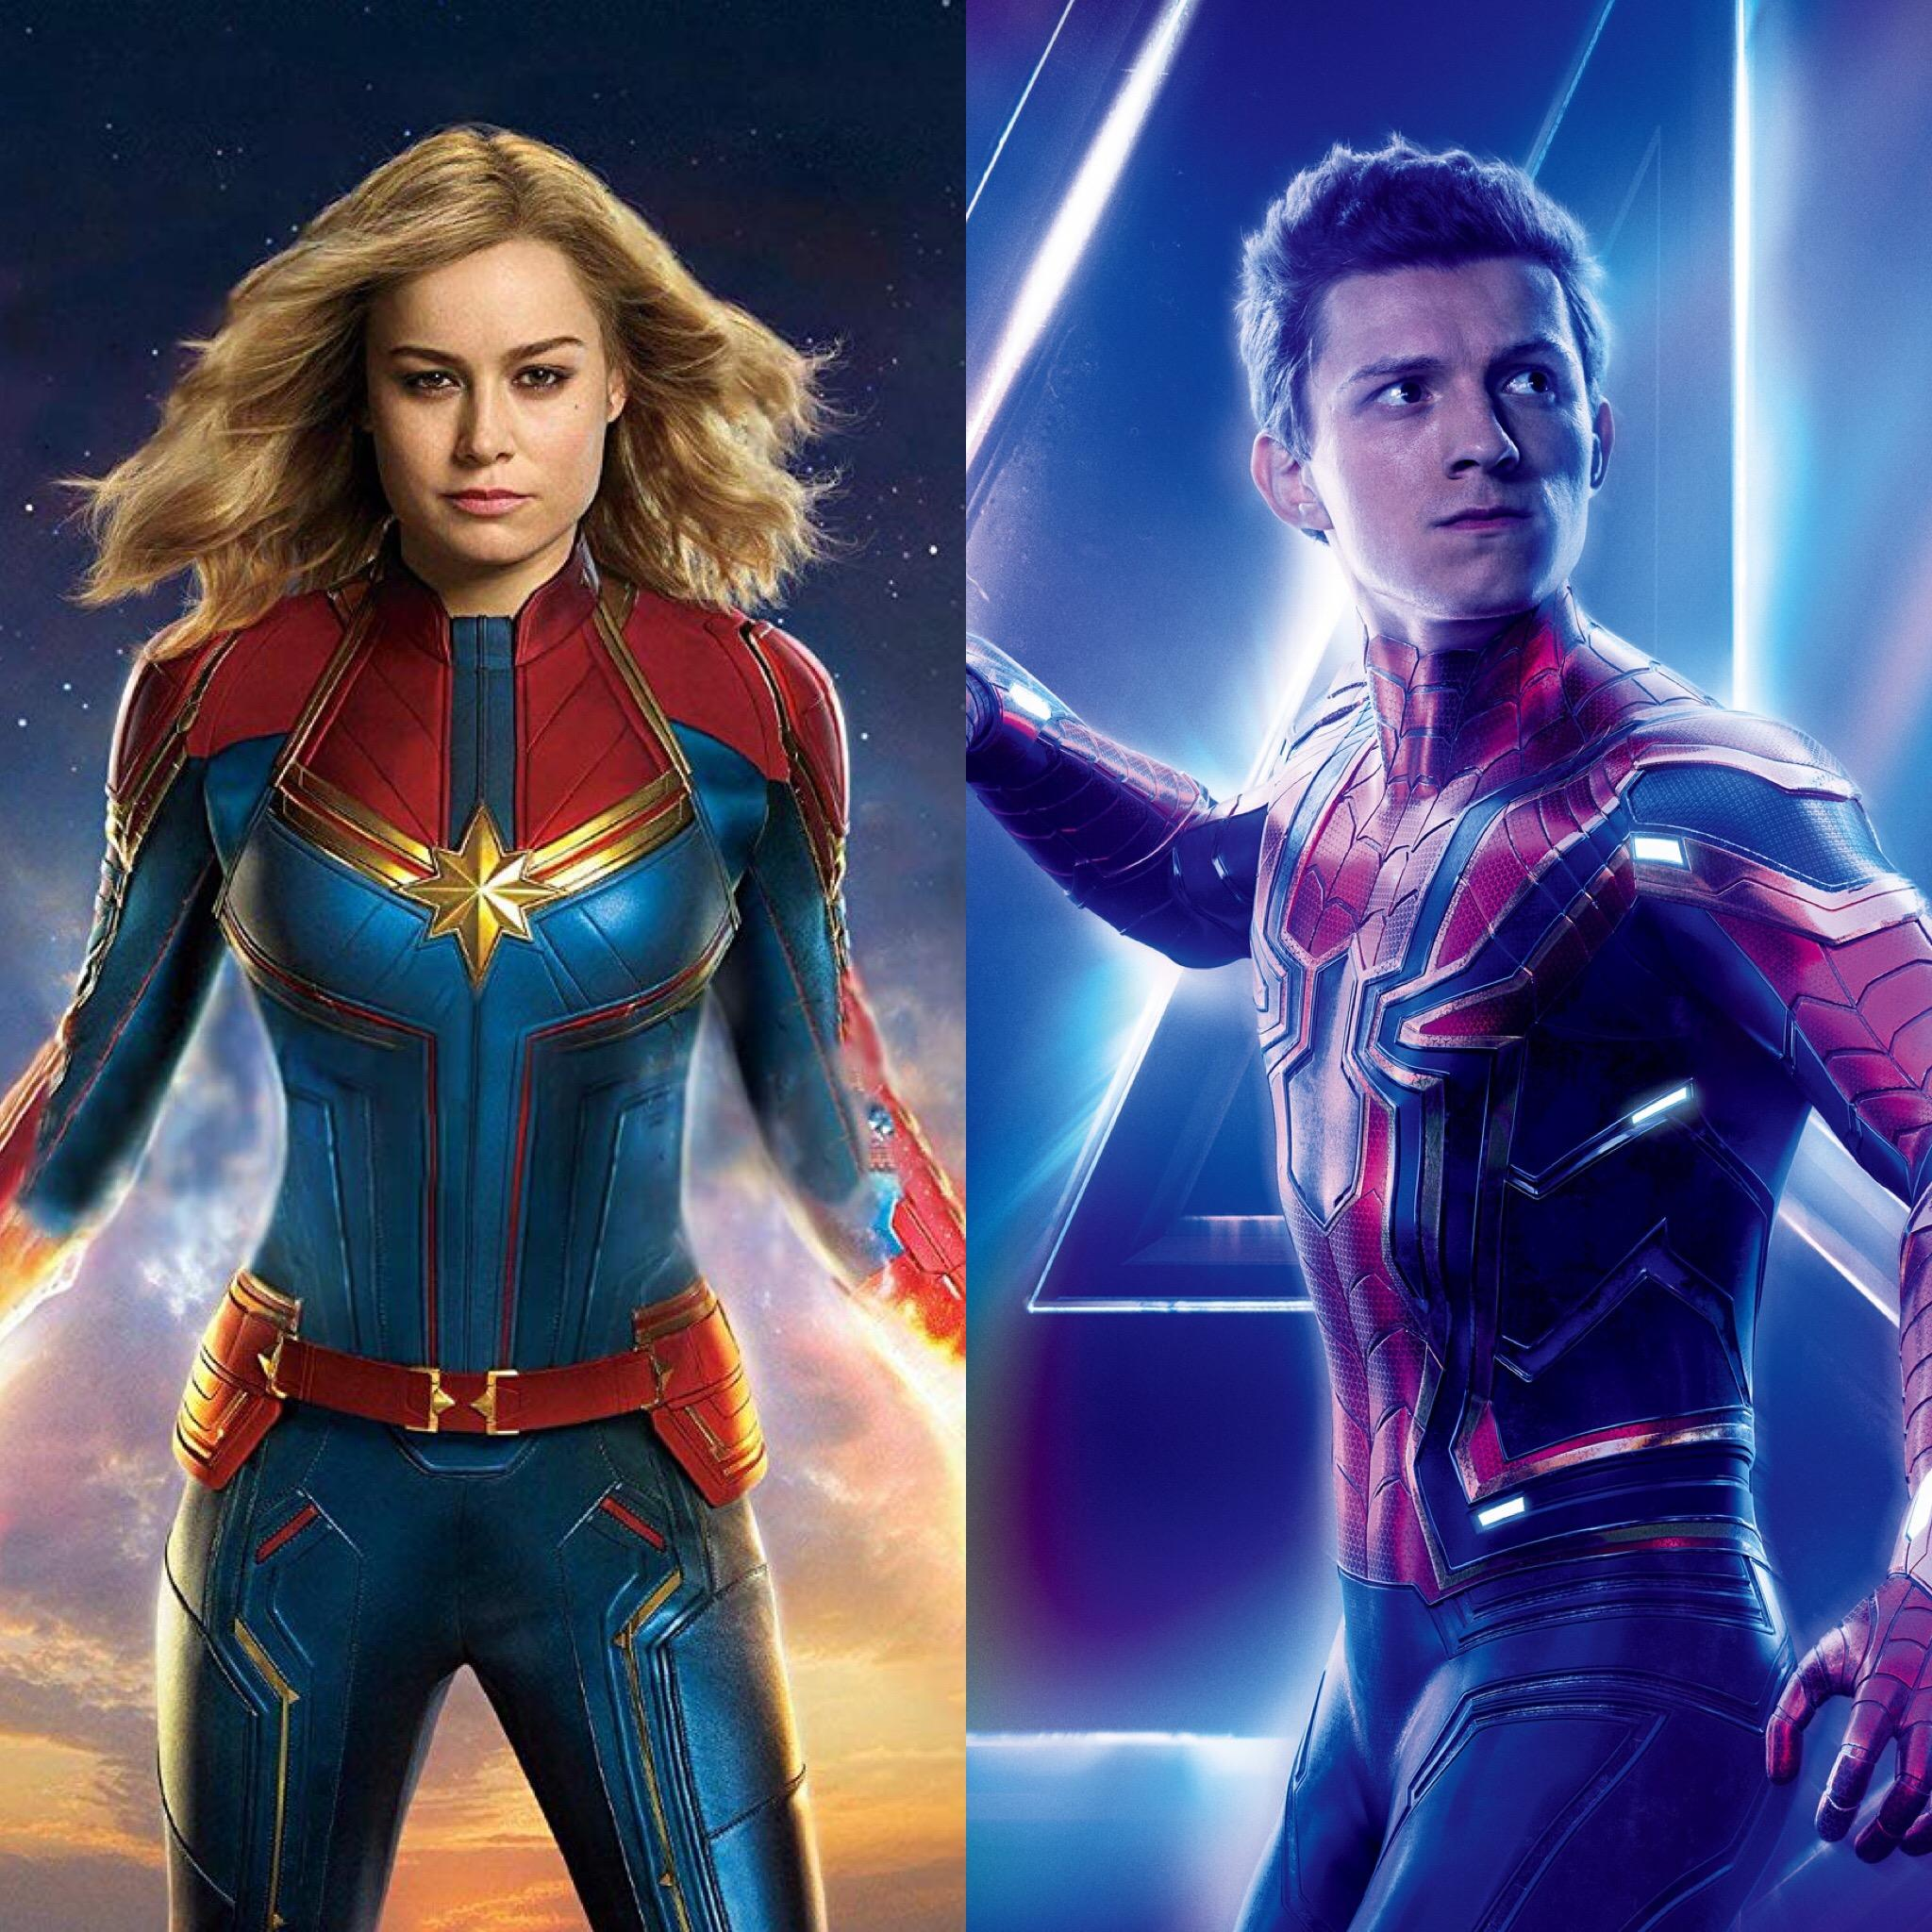 Did Captain Marvel Just Get Her MCU Name From… Peter Parker